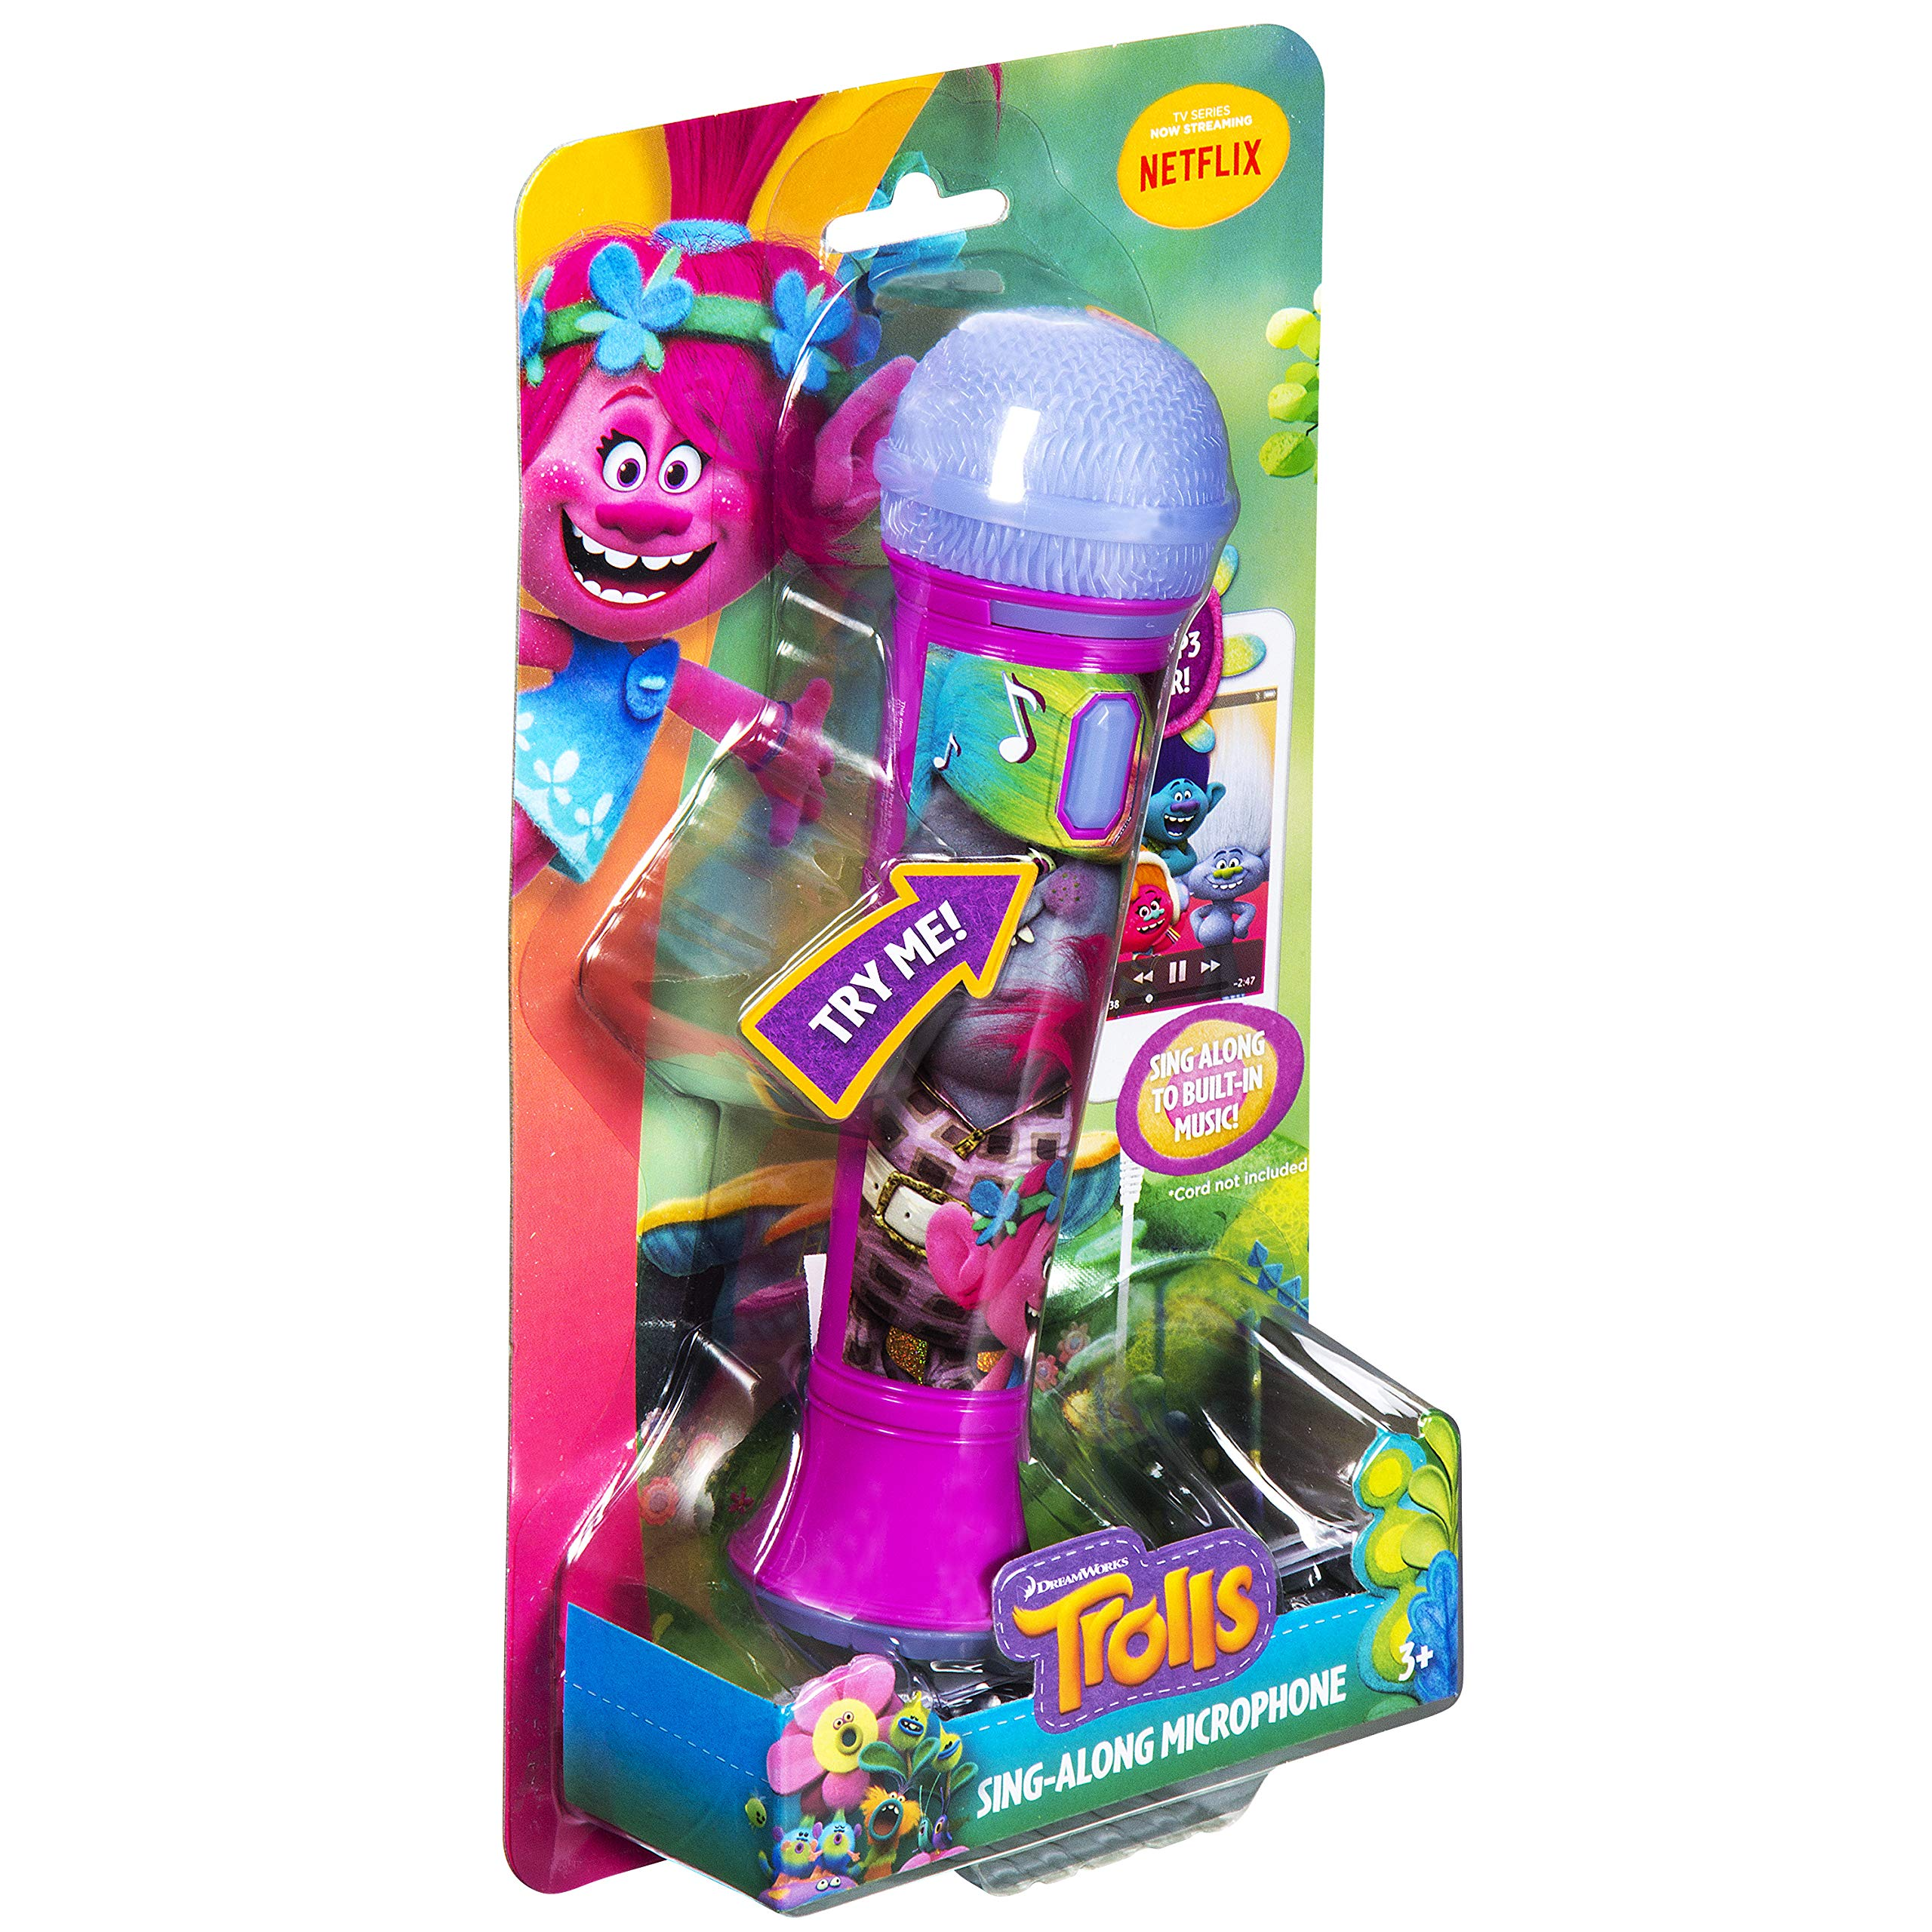 Trolls Sing Along MP3 Microphone Sing to Built in Music or Connect Your Audio Device and Sing to Whatever You Like by eKids (Image #7)